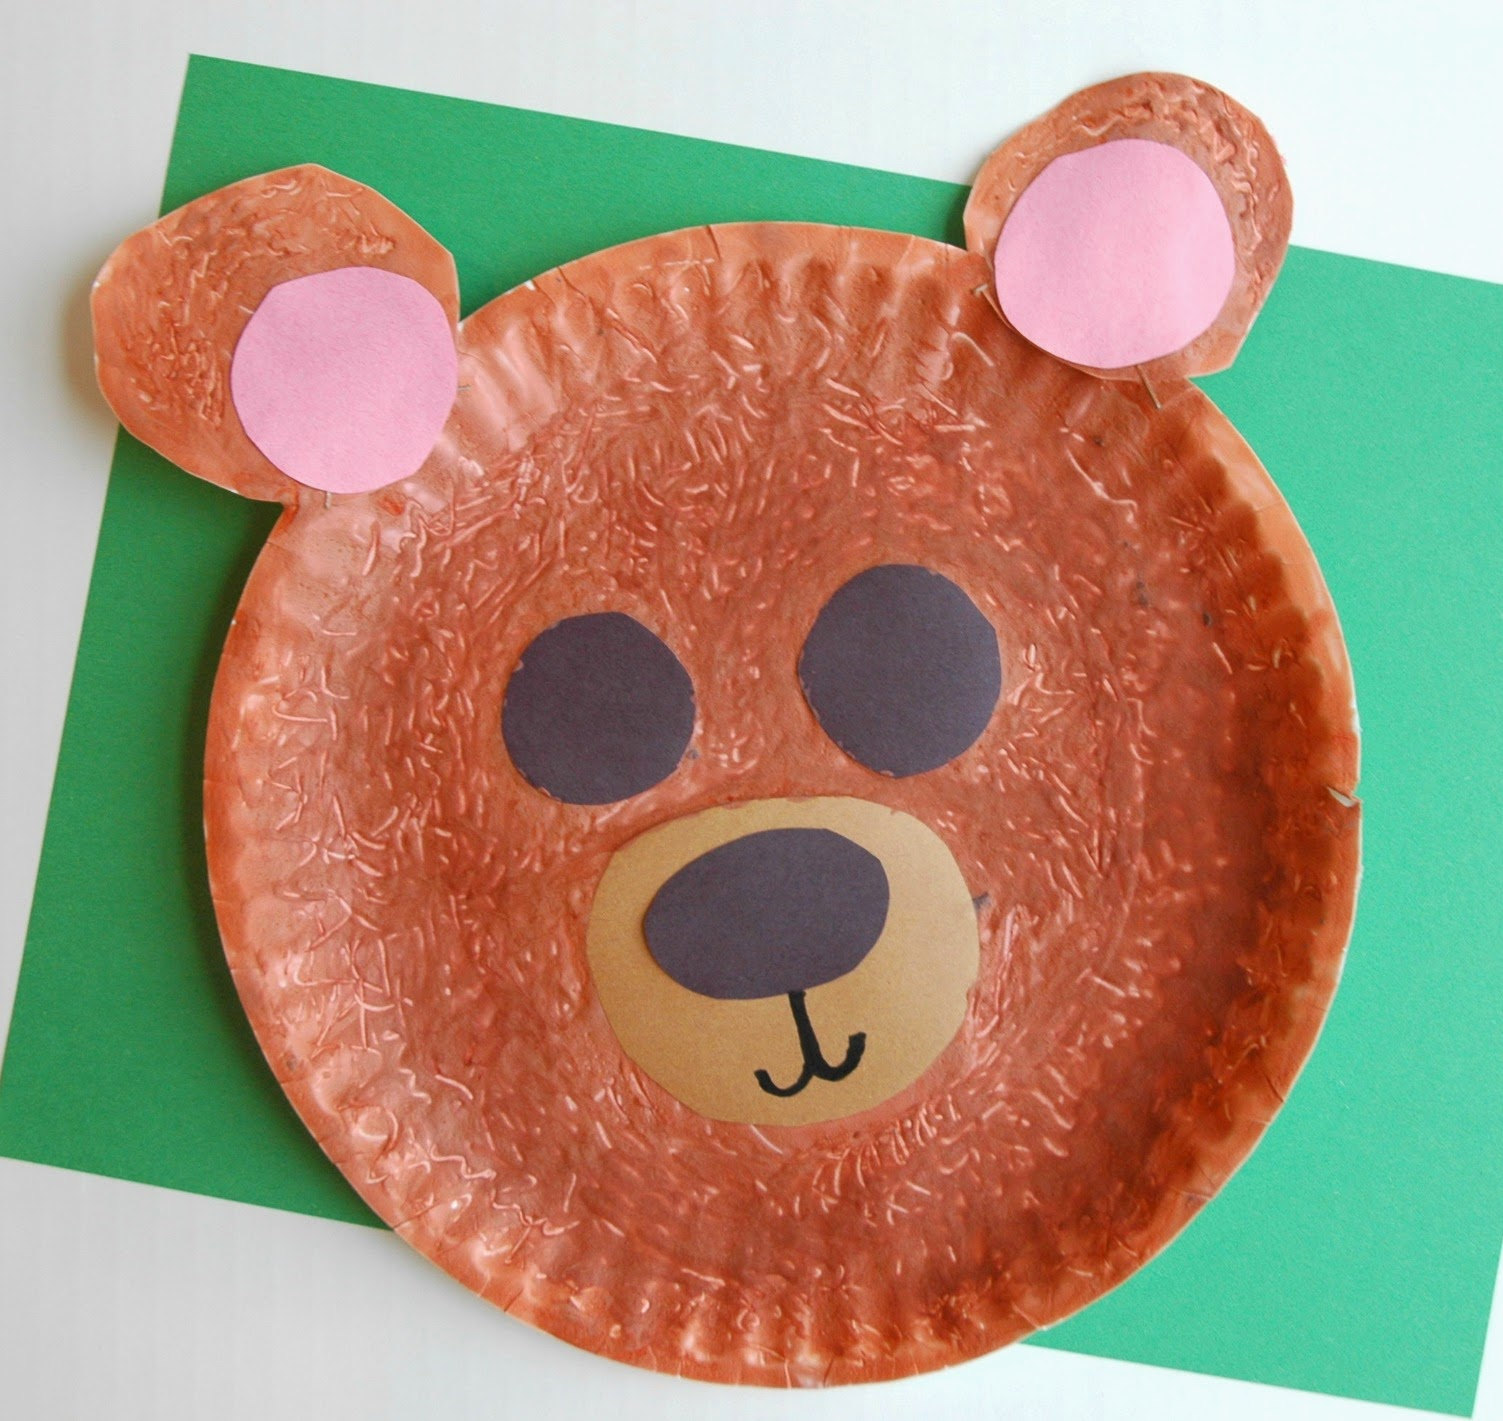 Fuzzy Brown Bear Craft for Kids & Fuzzy Brown Bear Craft | What Can We Do With Paper And Glue